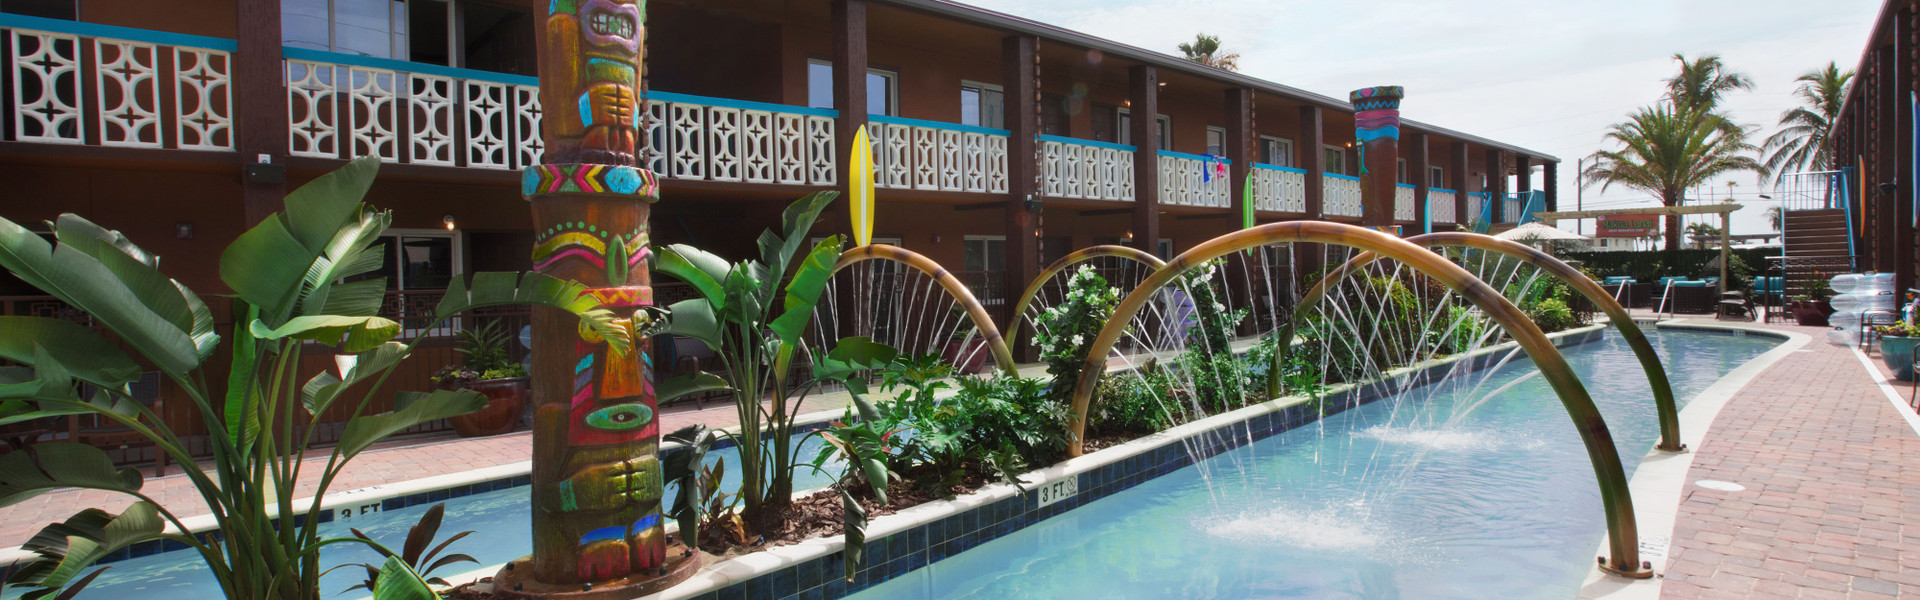 Friends Getaway Hotel Rates In Cocoa Beach